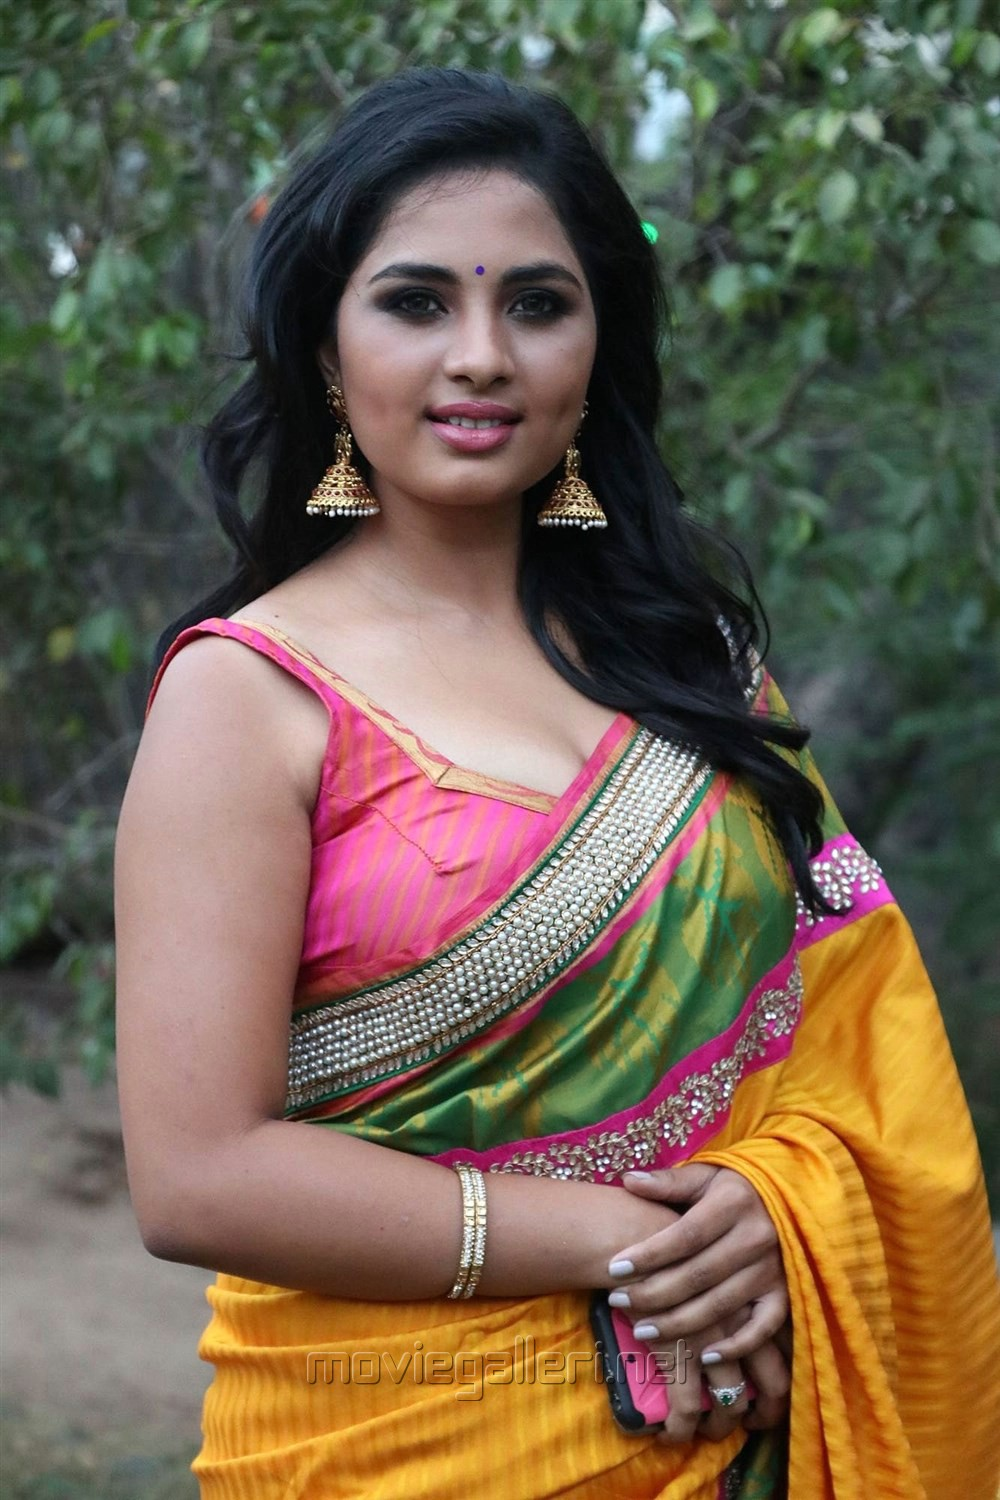 Actress srushti in saree dhanush tamil movie song indian actress sexy hot backless blouse saree imageushti dange tamil actress srushti dange stills in yellow silk saree with sleeveless thecheapjerseys Gallery